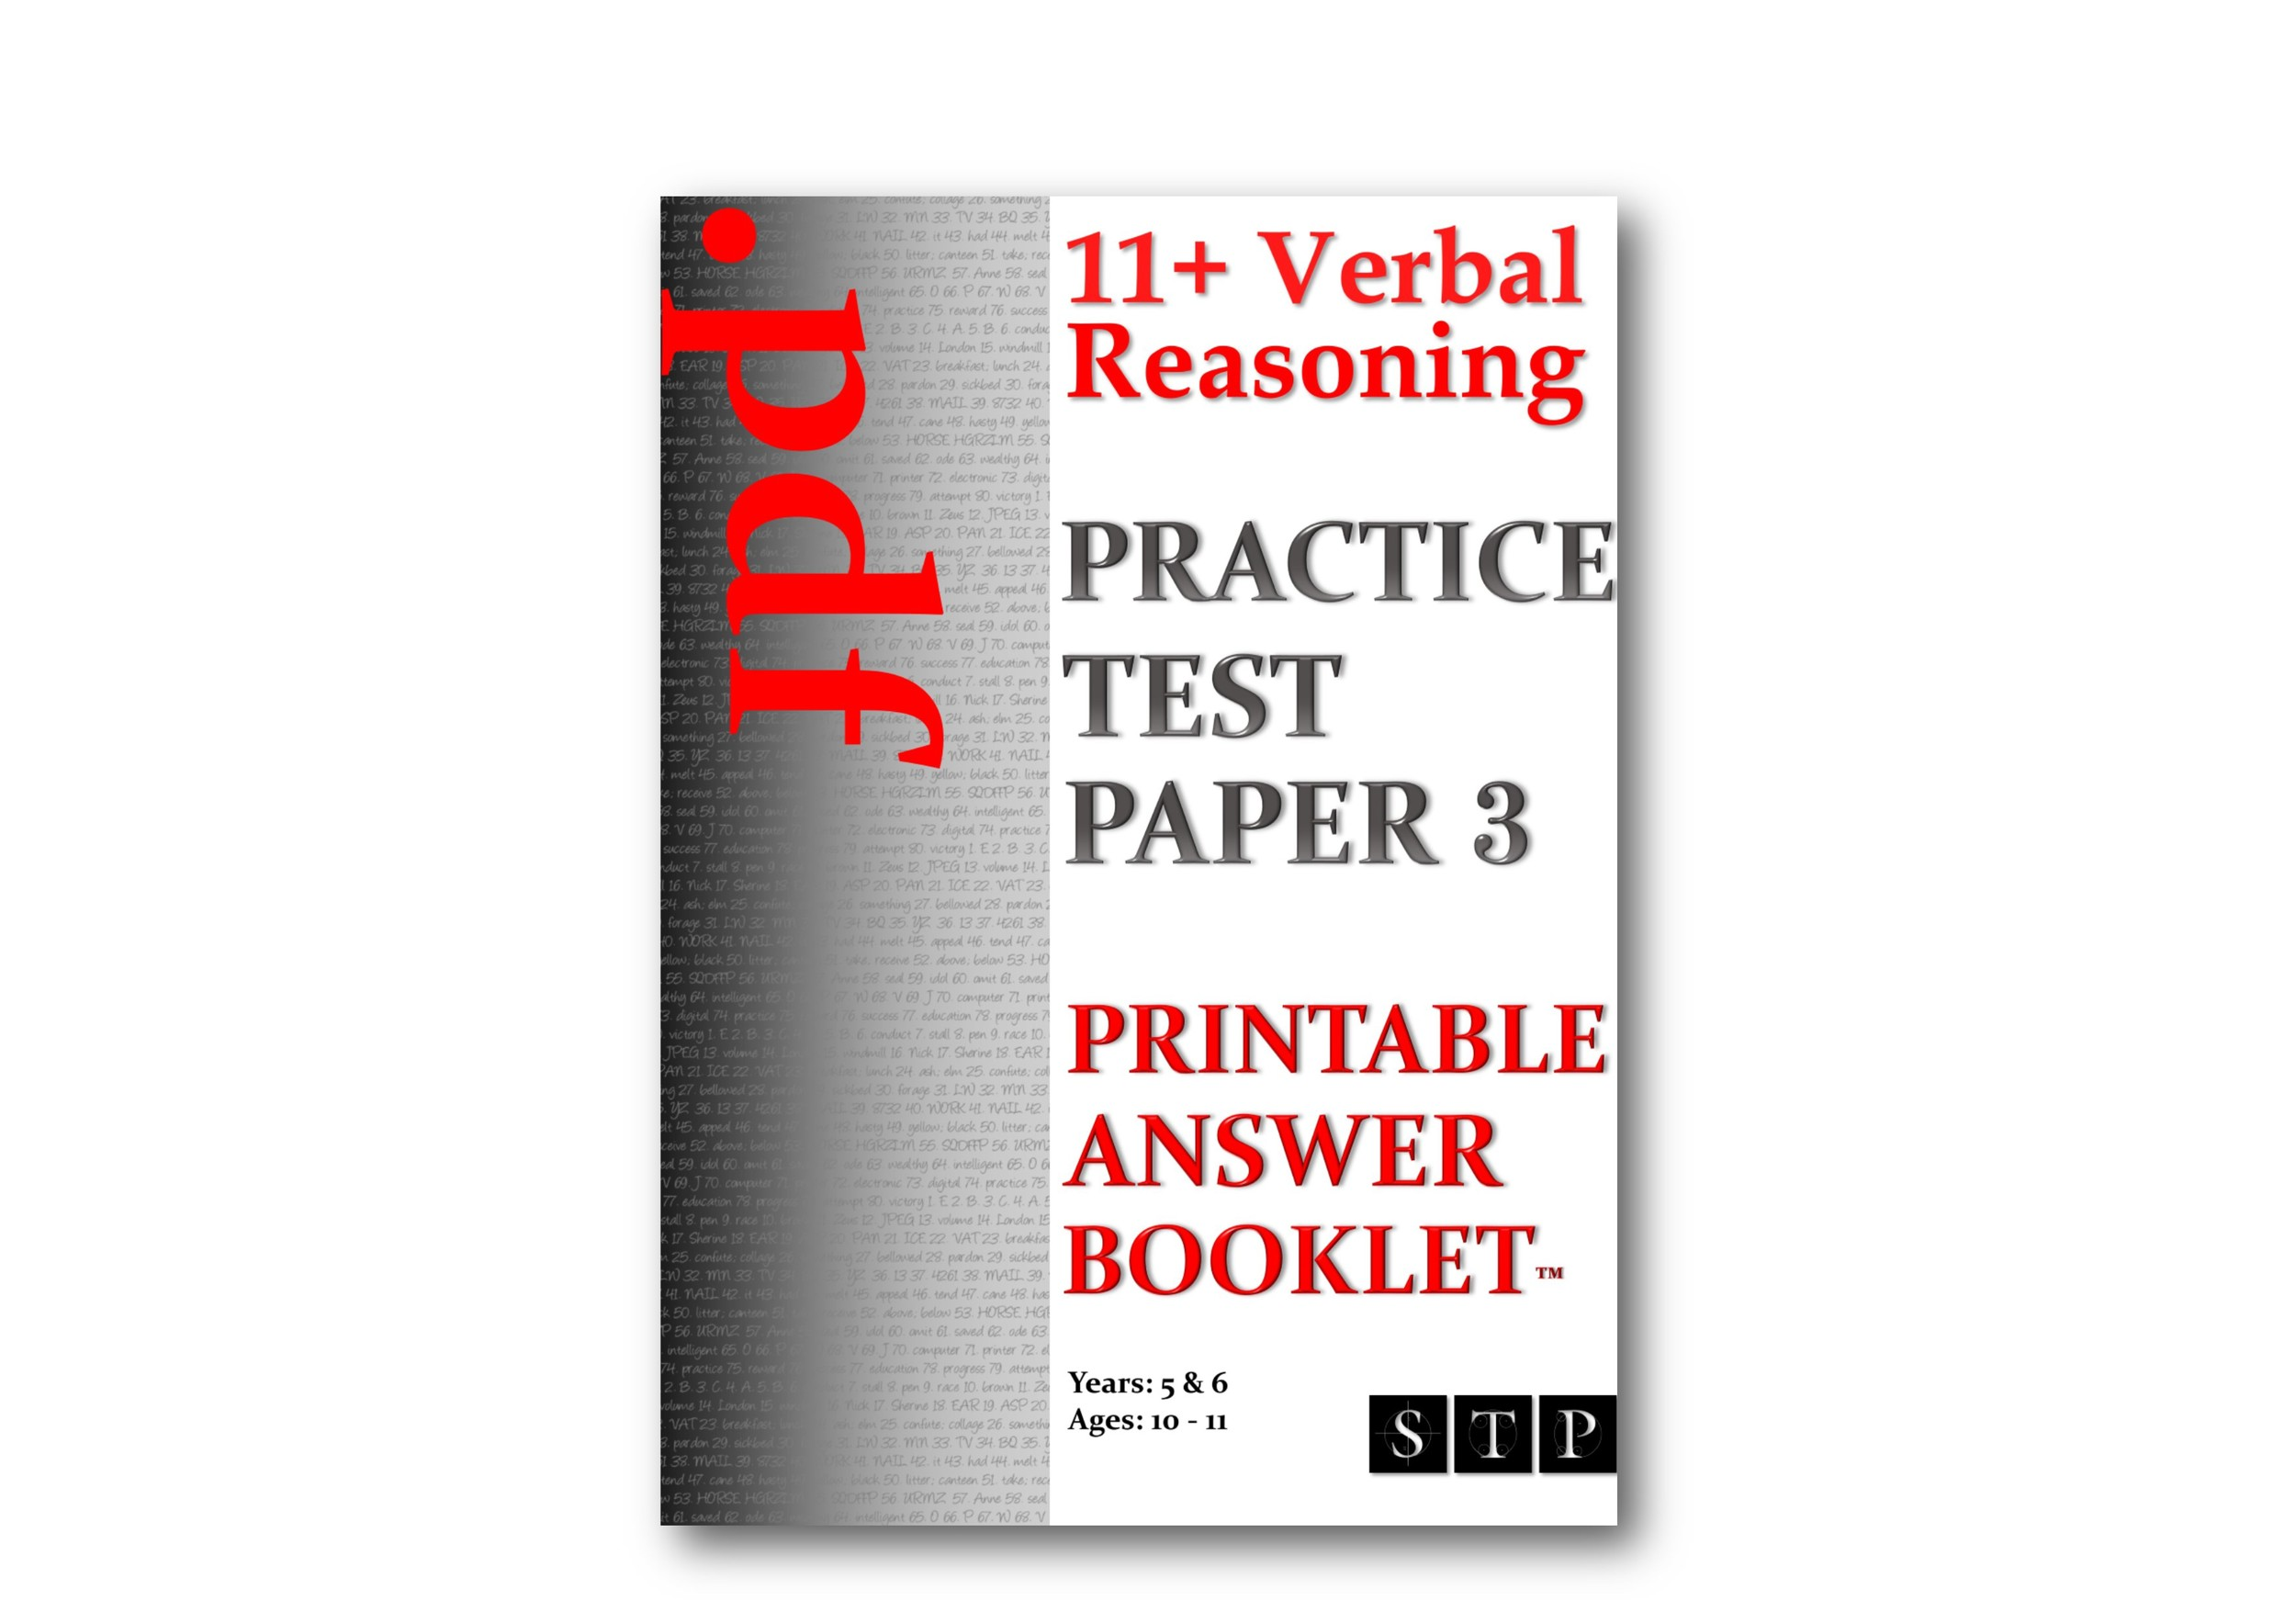 11+ Verbal Reasoning Practice Test Paper 3 (Printable Answer Booklet).jpg